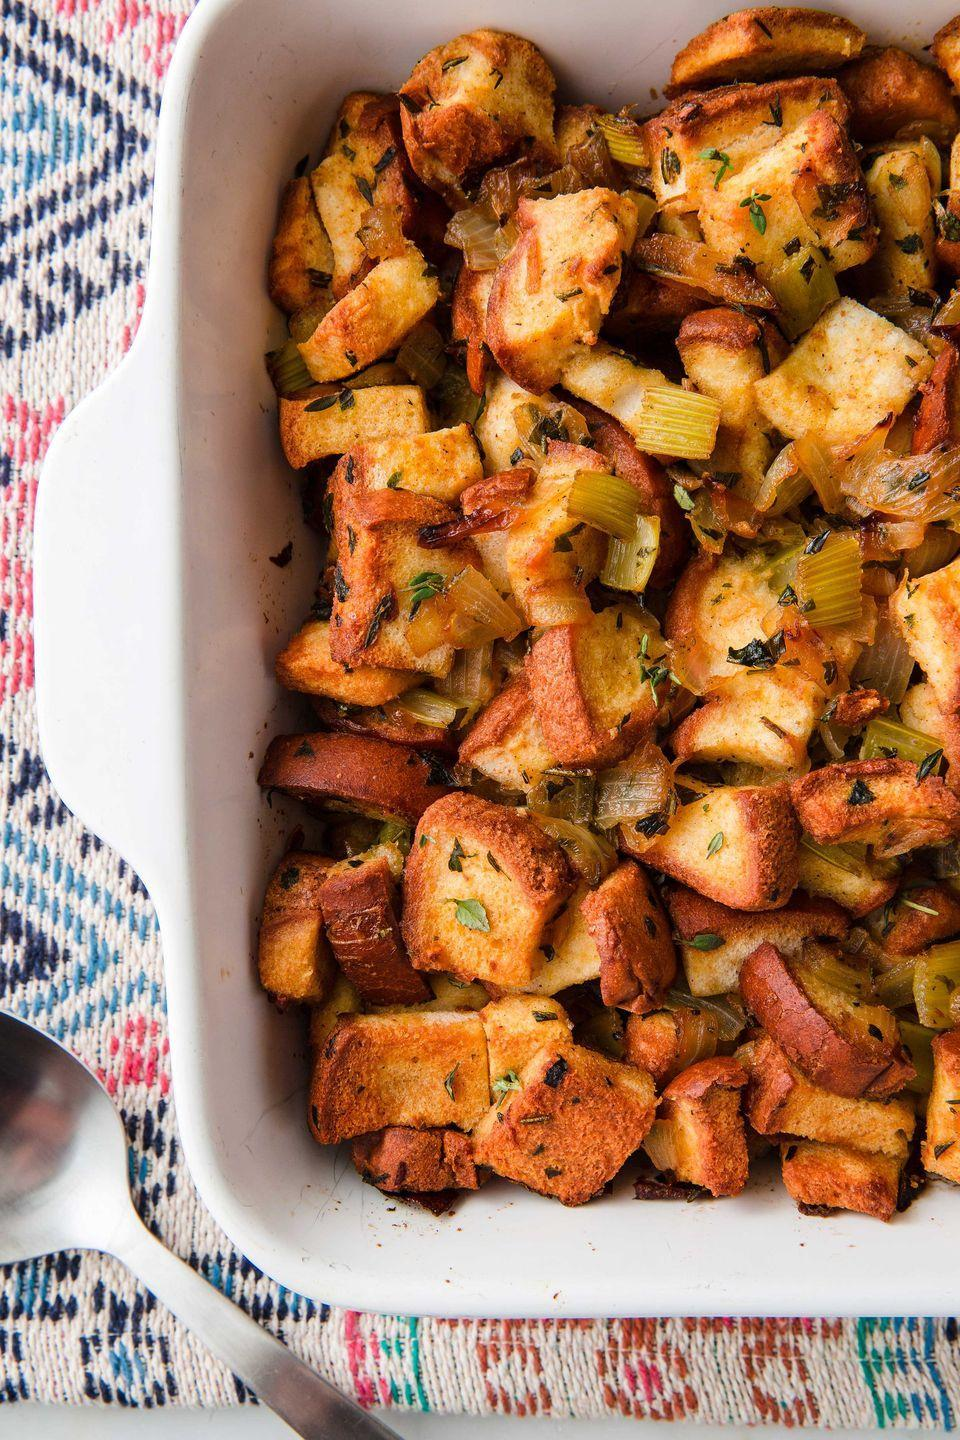 """<p>Add some sausage if ya want!</p><p>Get the recipe from <a href=""""https://www.delish.com/cooking/recipe-ideas/a22566155/best-gluten-free-stuffing-recipe/"""" rel=""""nofollow noopener"""" target=""""_blank"""" data-ylk=""""slk:Delish"""" class=""""link rapid-noclick-resp"""">Delish</a>. </p>"""